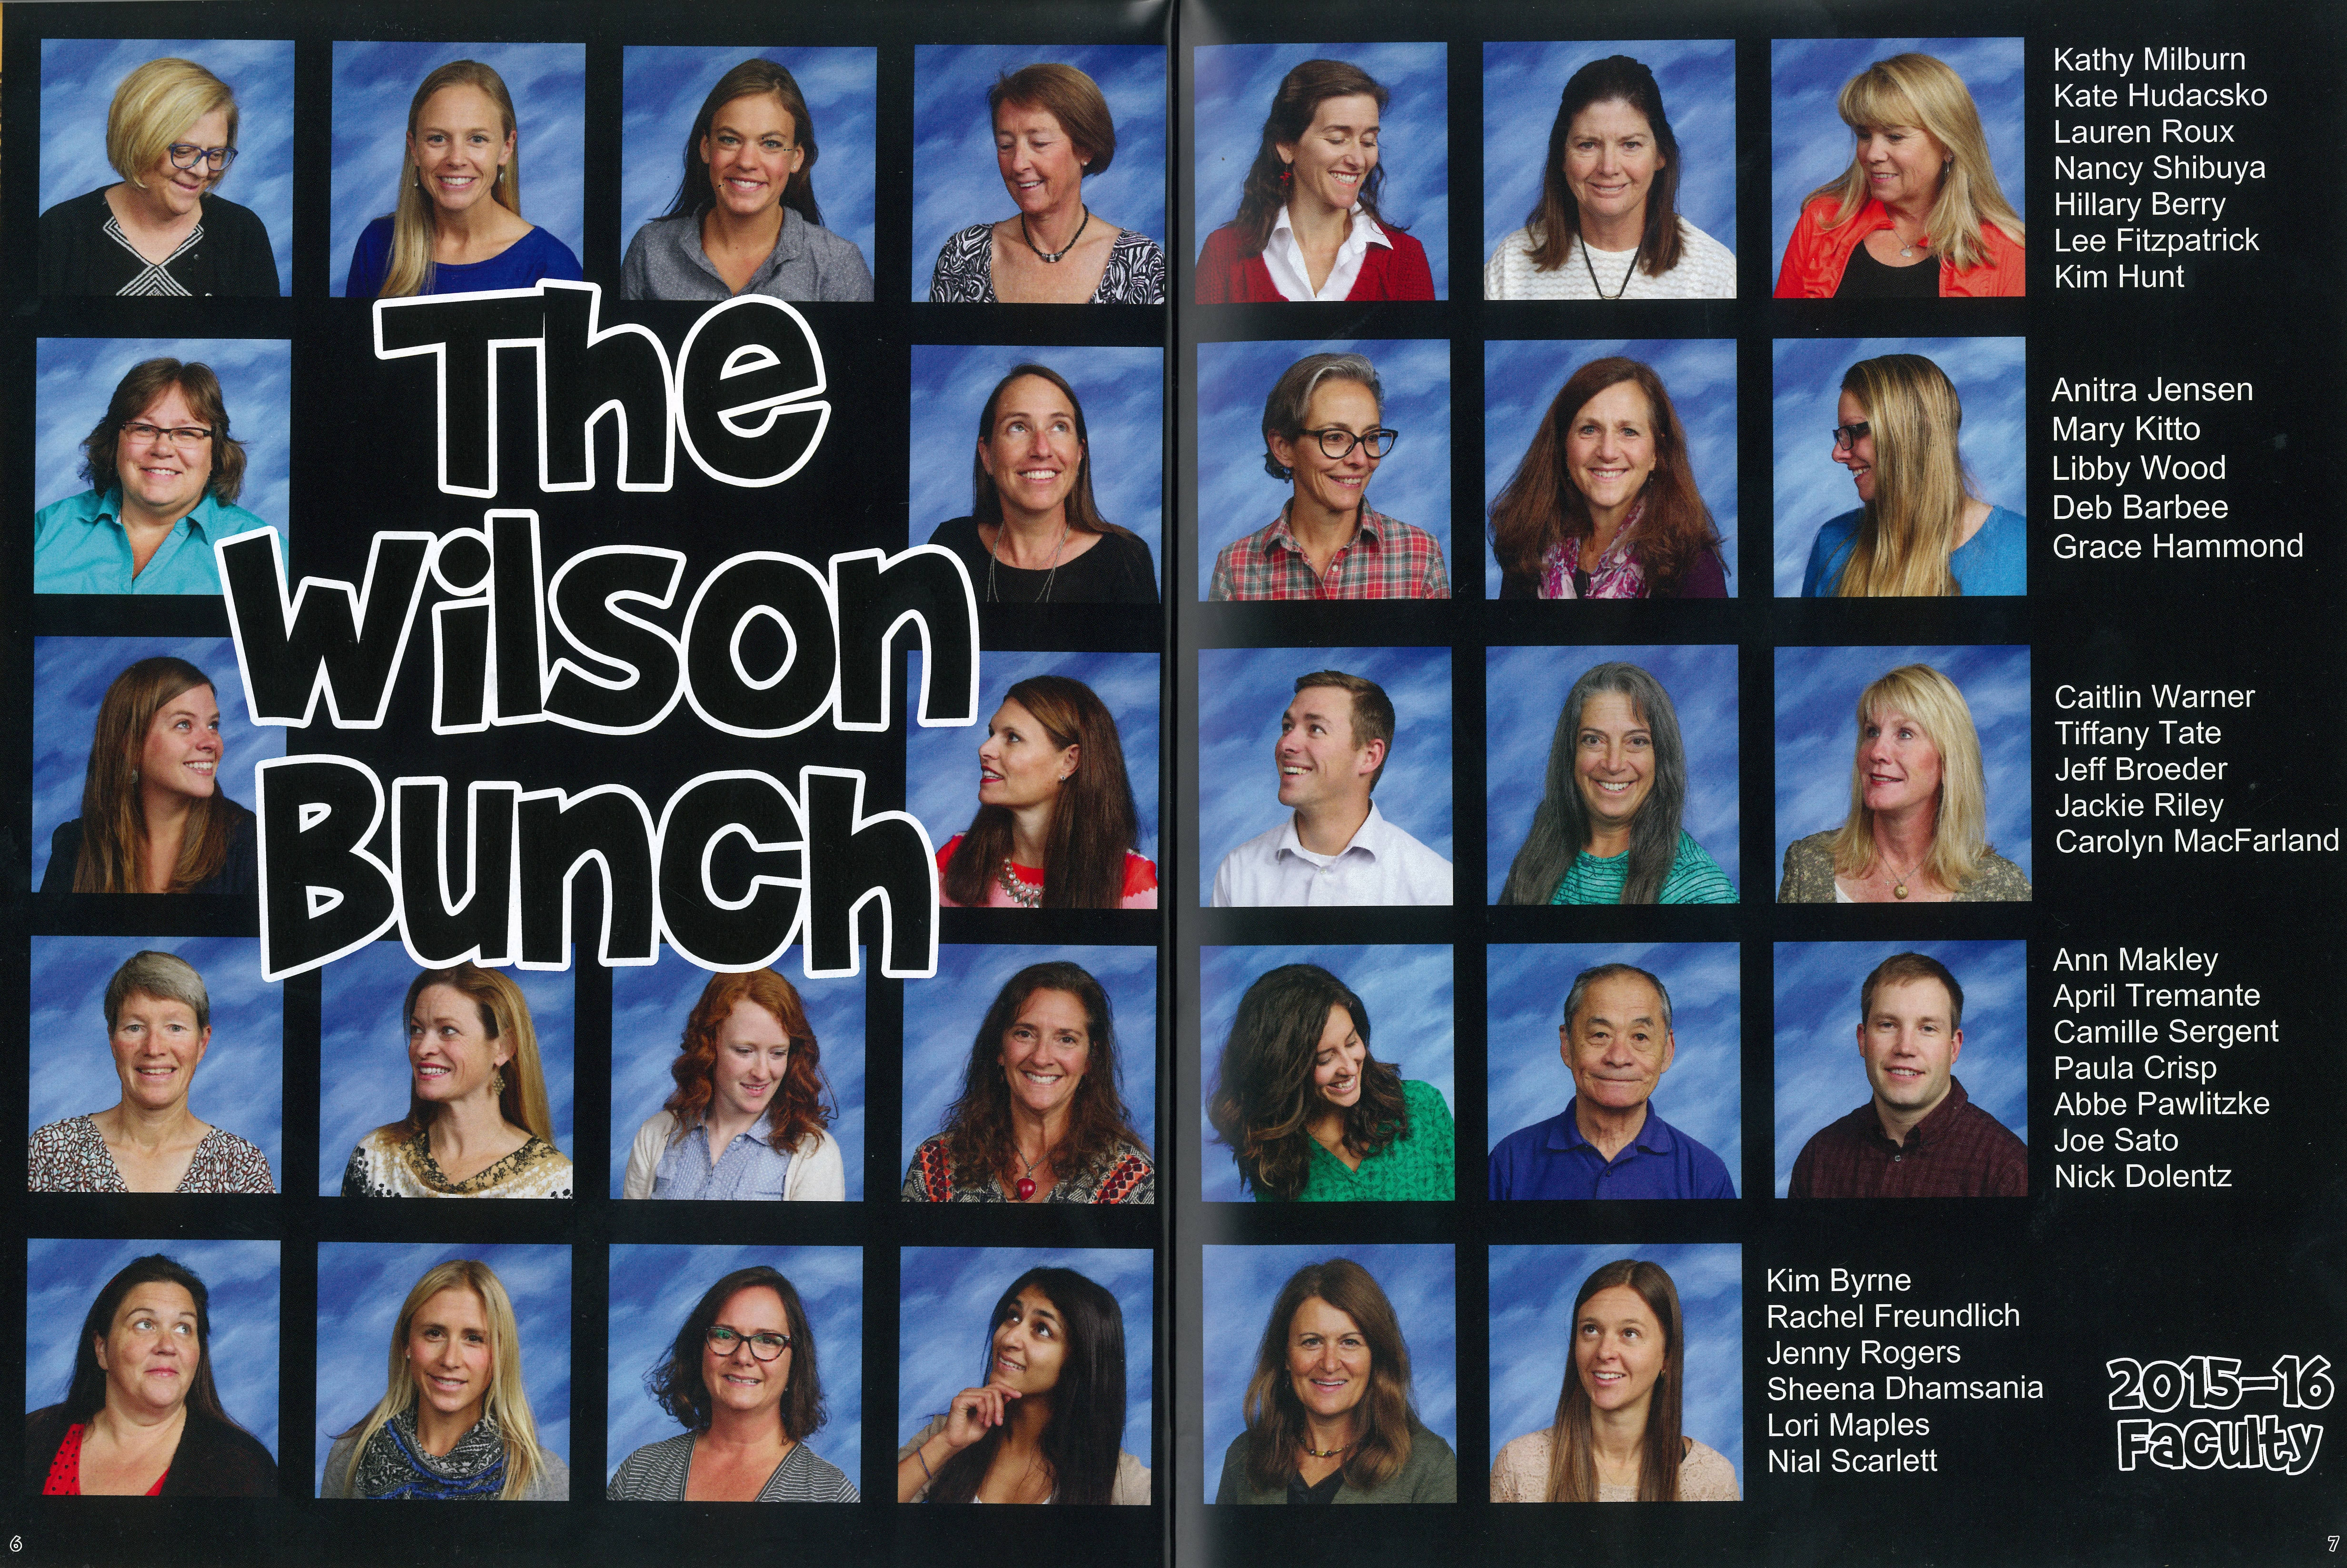 Funny Yearbook Posters: Brady Bunch Themed Faculty Pages In Your Yearbook Is A Fun